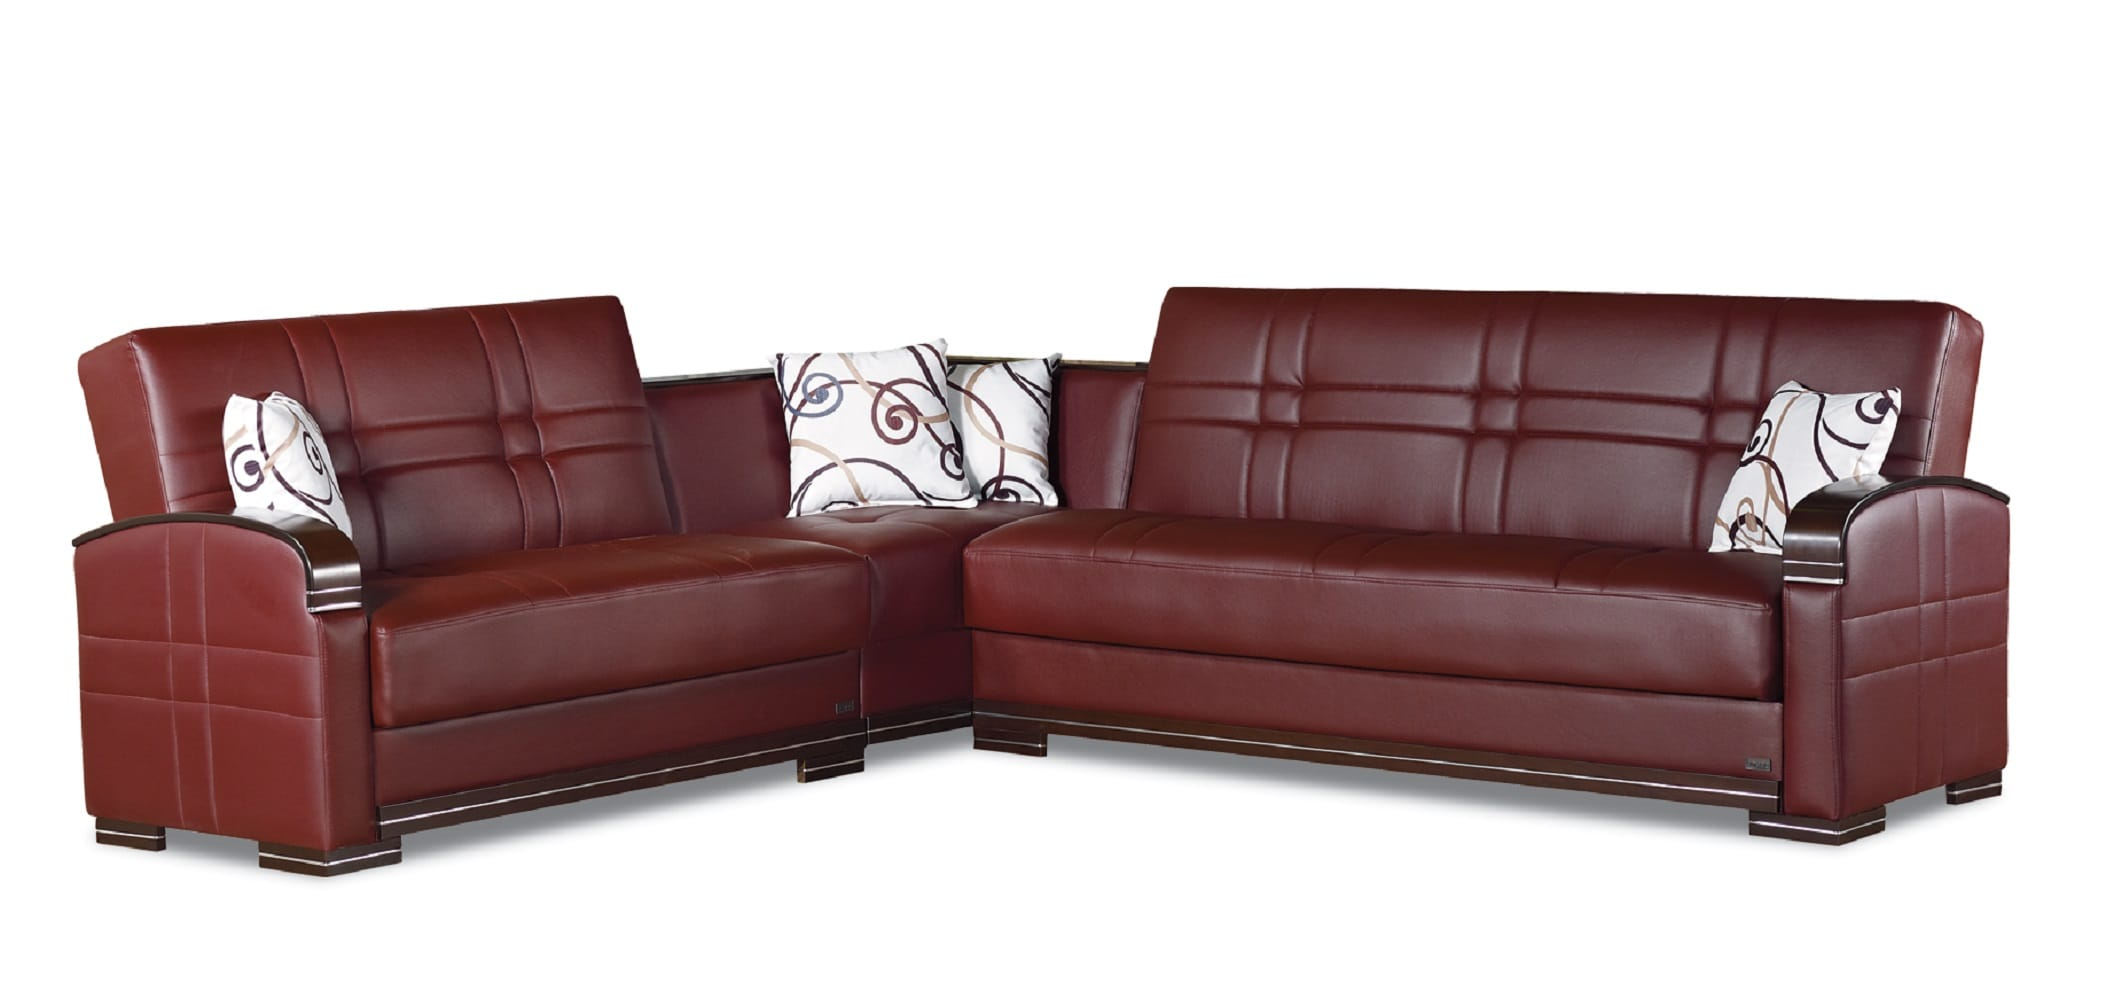 Manhattan Burgundy Leather Sectional Sofa by Empire Furniture USA